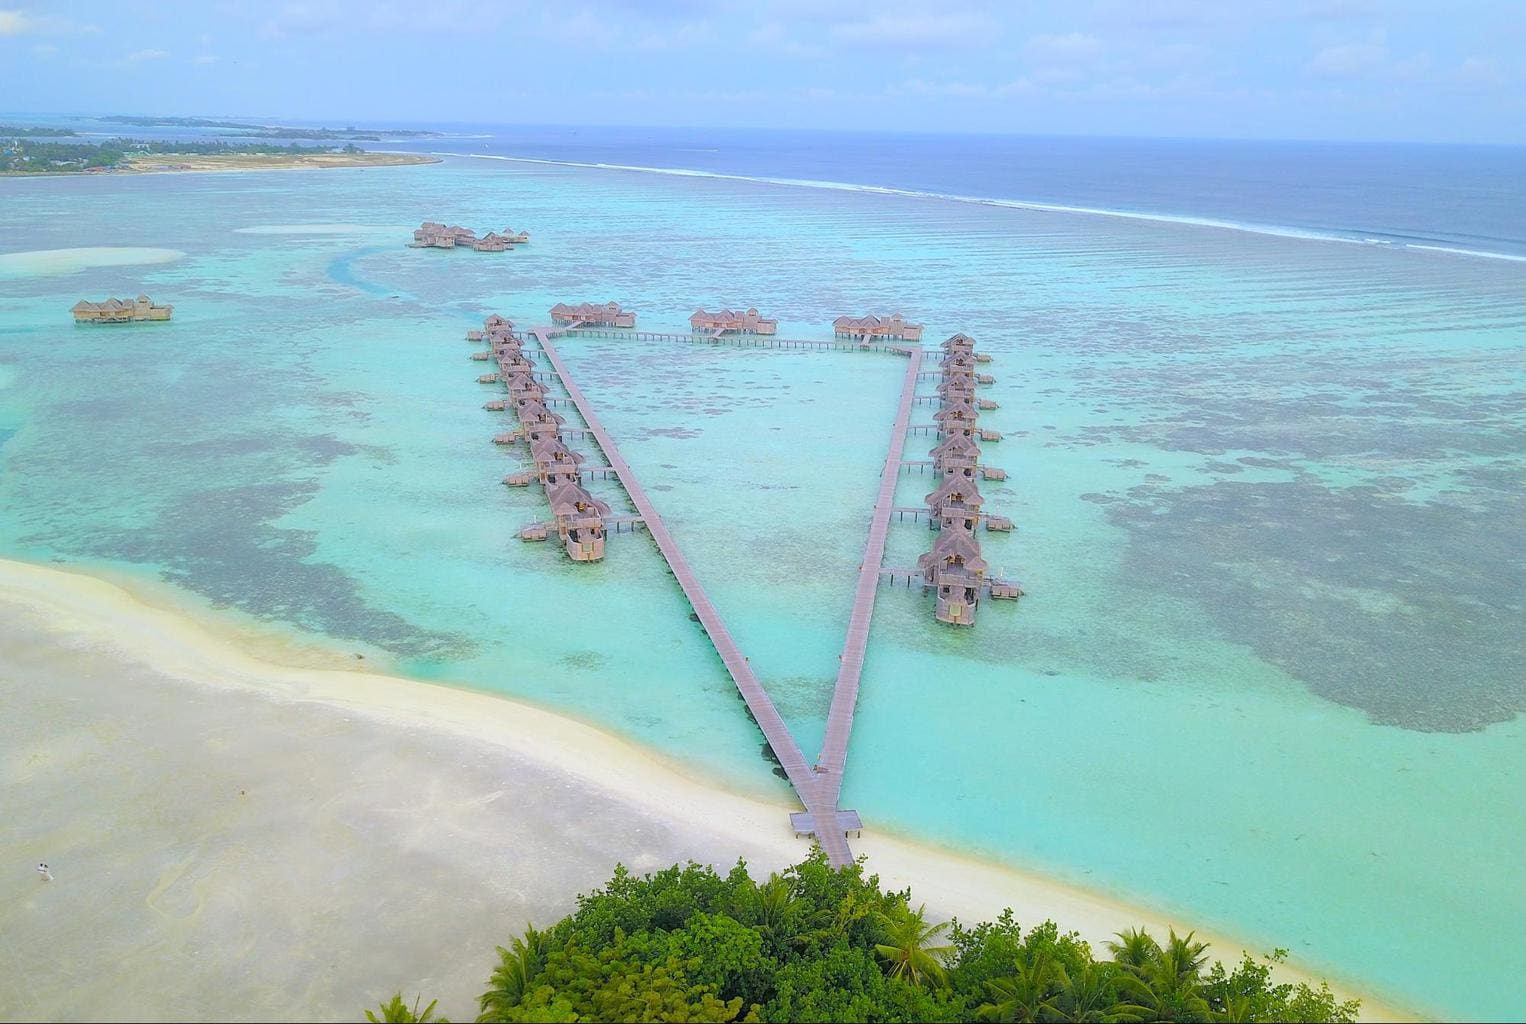 One of the jetties at Gili Lankanfushi on a cloudy day